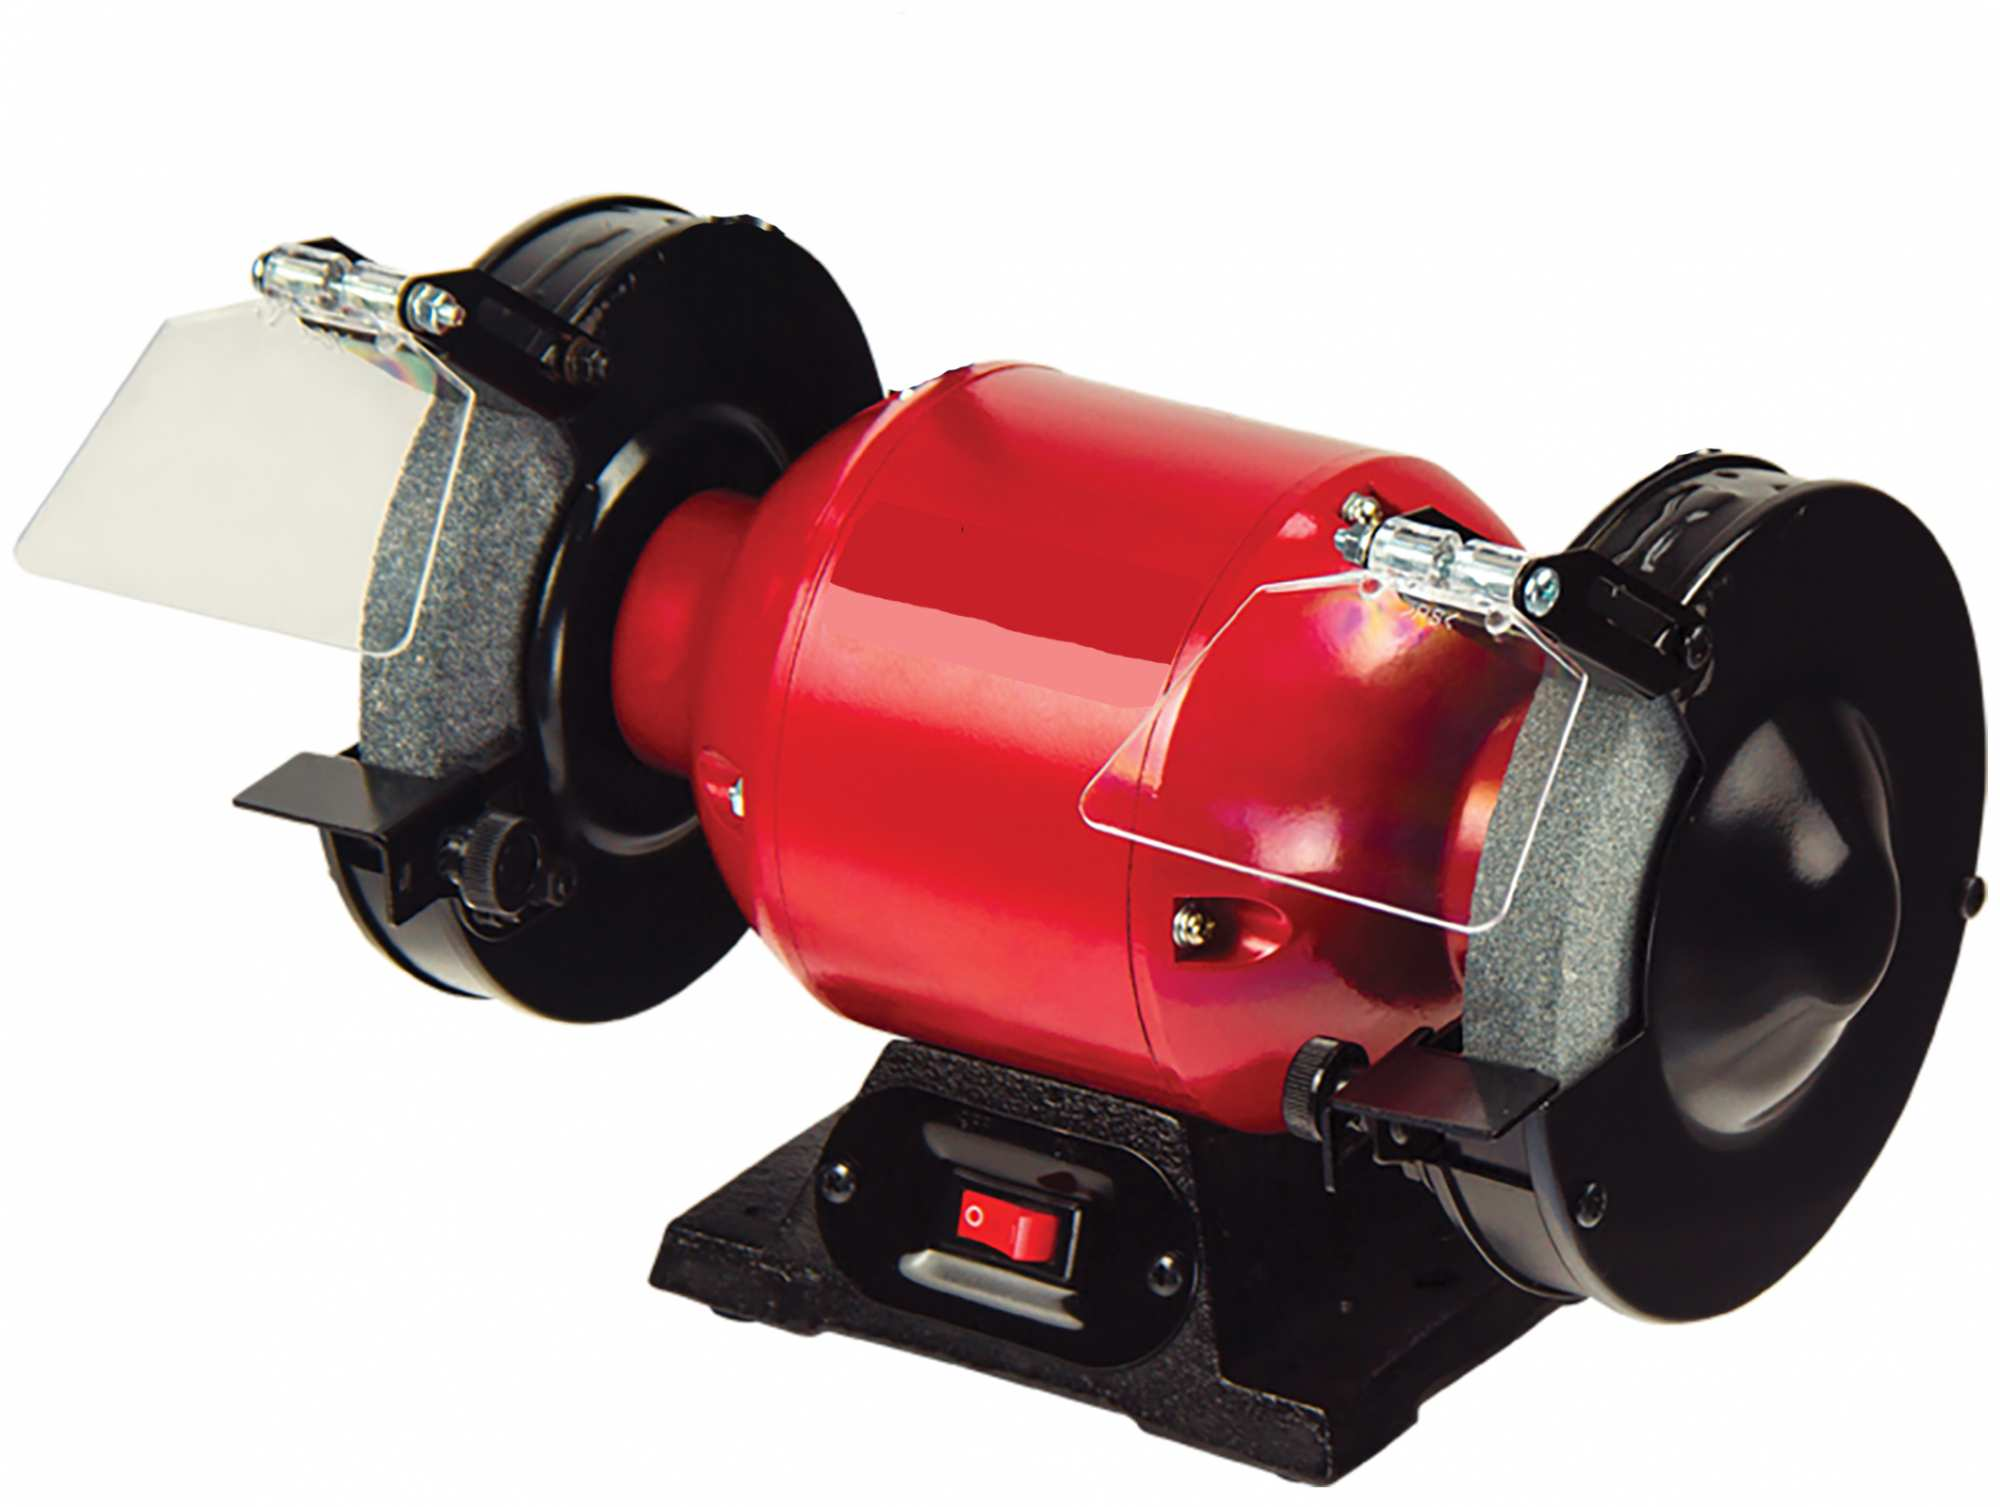 250W Premium Bench Grinder (Factory Second)